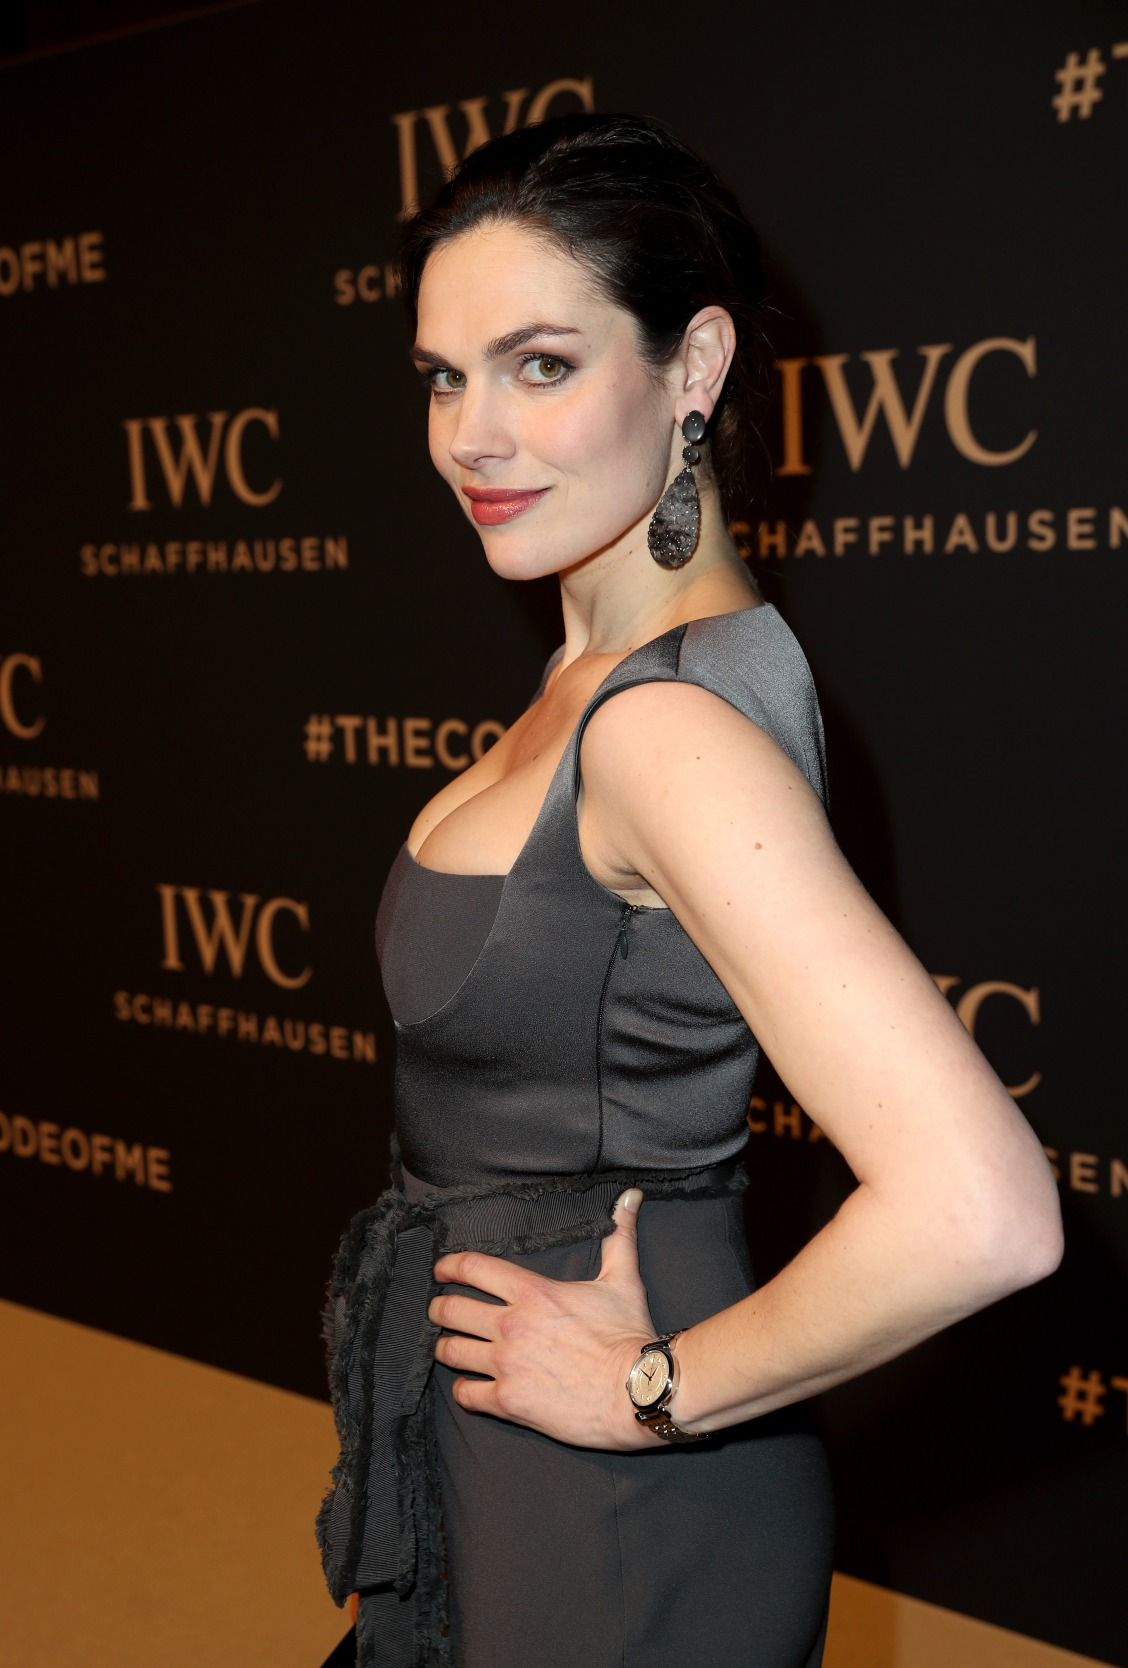 Anna Drijver On The Red Carpet At The Iwc Sihh Gala Event